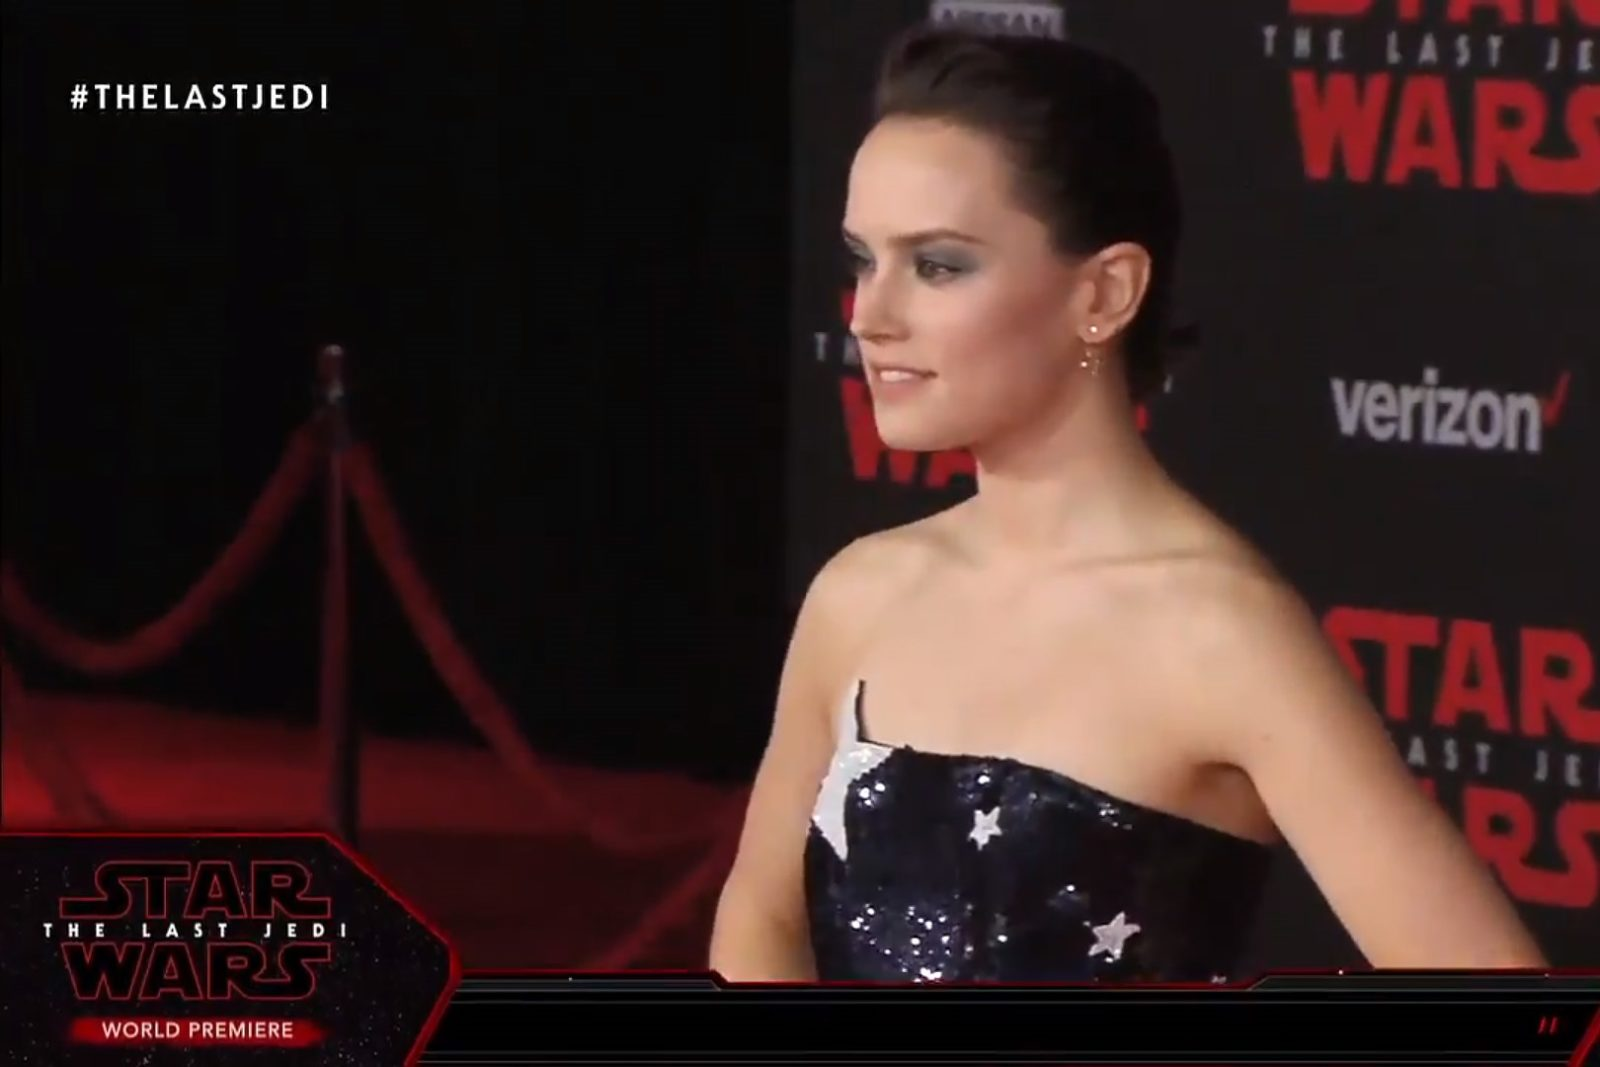 Star Wars Actresses on the TLJ Red Carpet